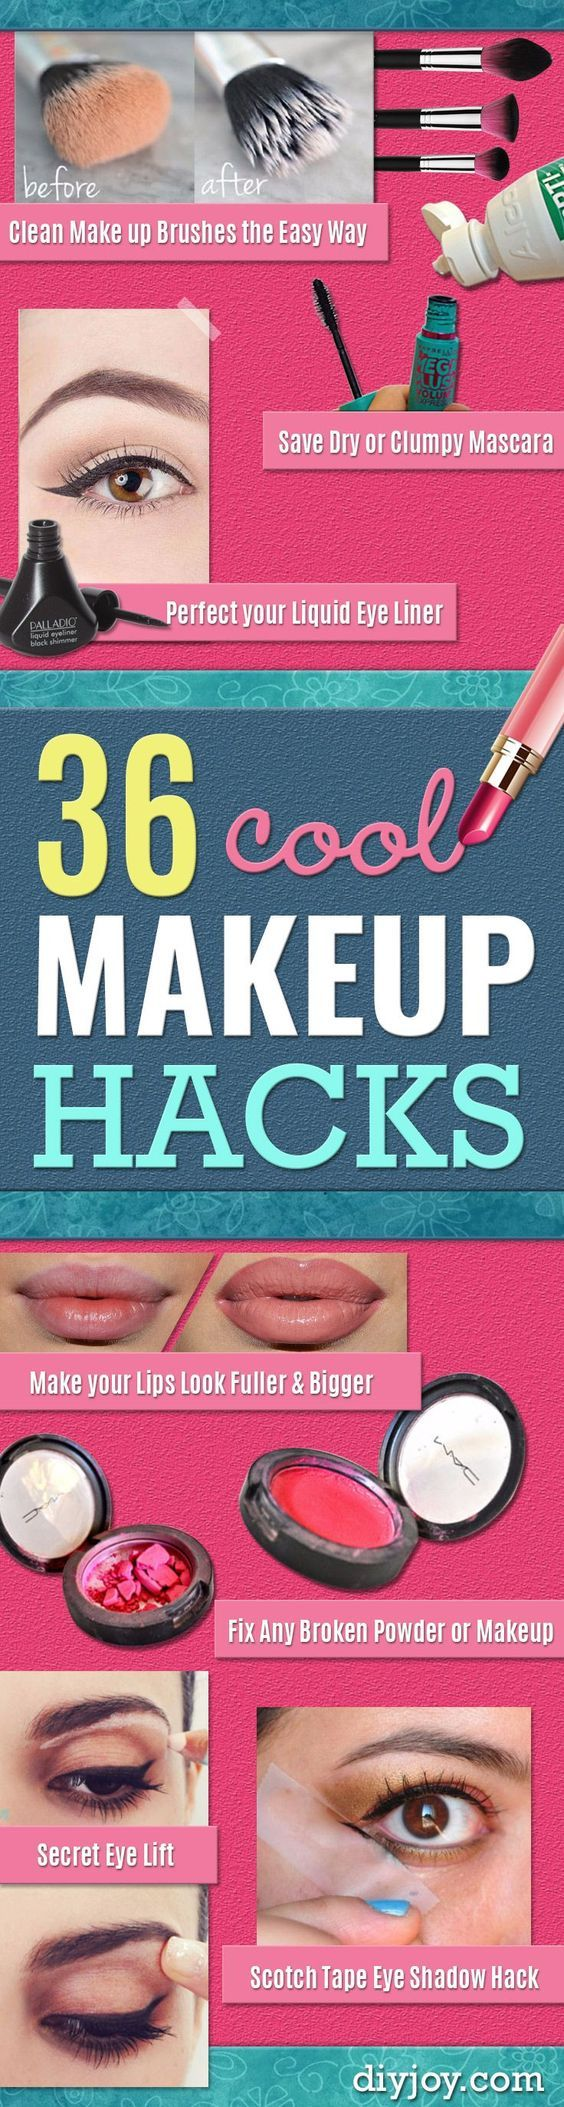 Cool DIY Makeup Hacks for Quick and Easy Beauty Ideas - How To Fix Broken Makeup, Tips and Tricks for Mascara and Eye Liner, Lipstick and Foundation Tutorials - Fast Do It Yourself Beauty Projects for Women http://diyjoy.com/makeup-hacks: